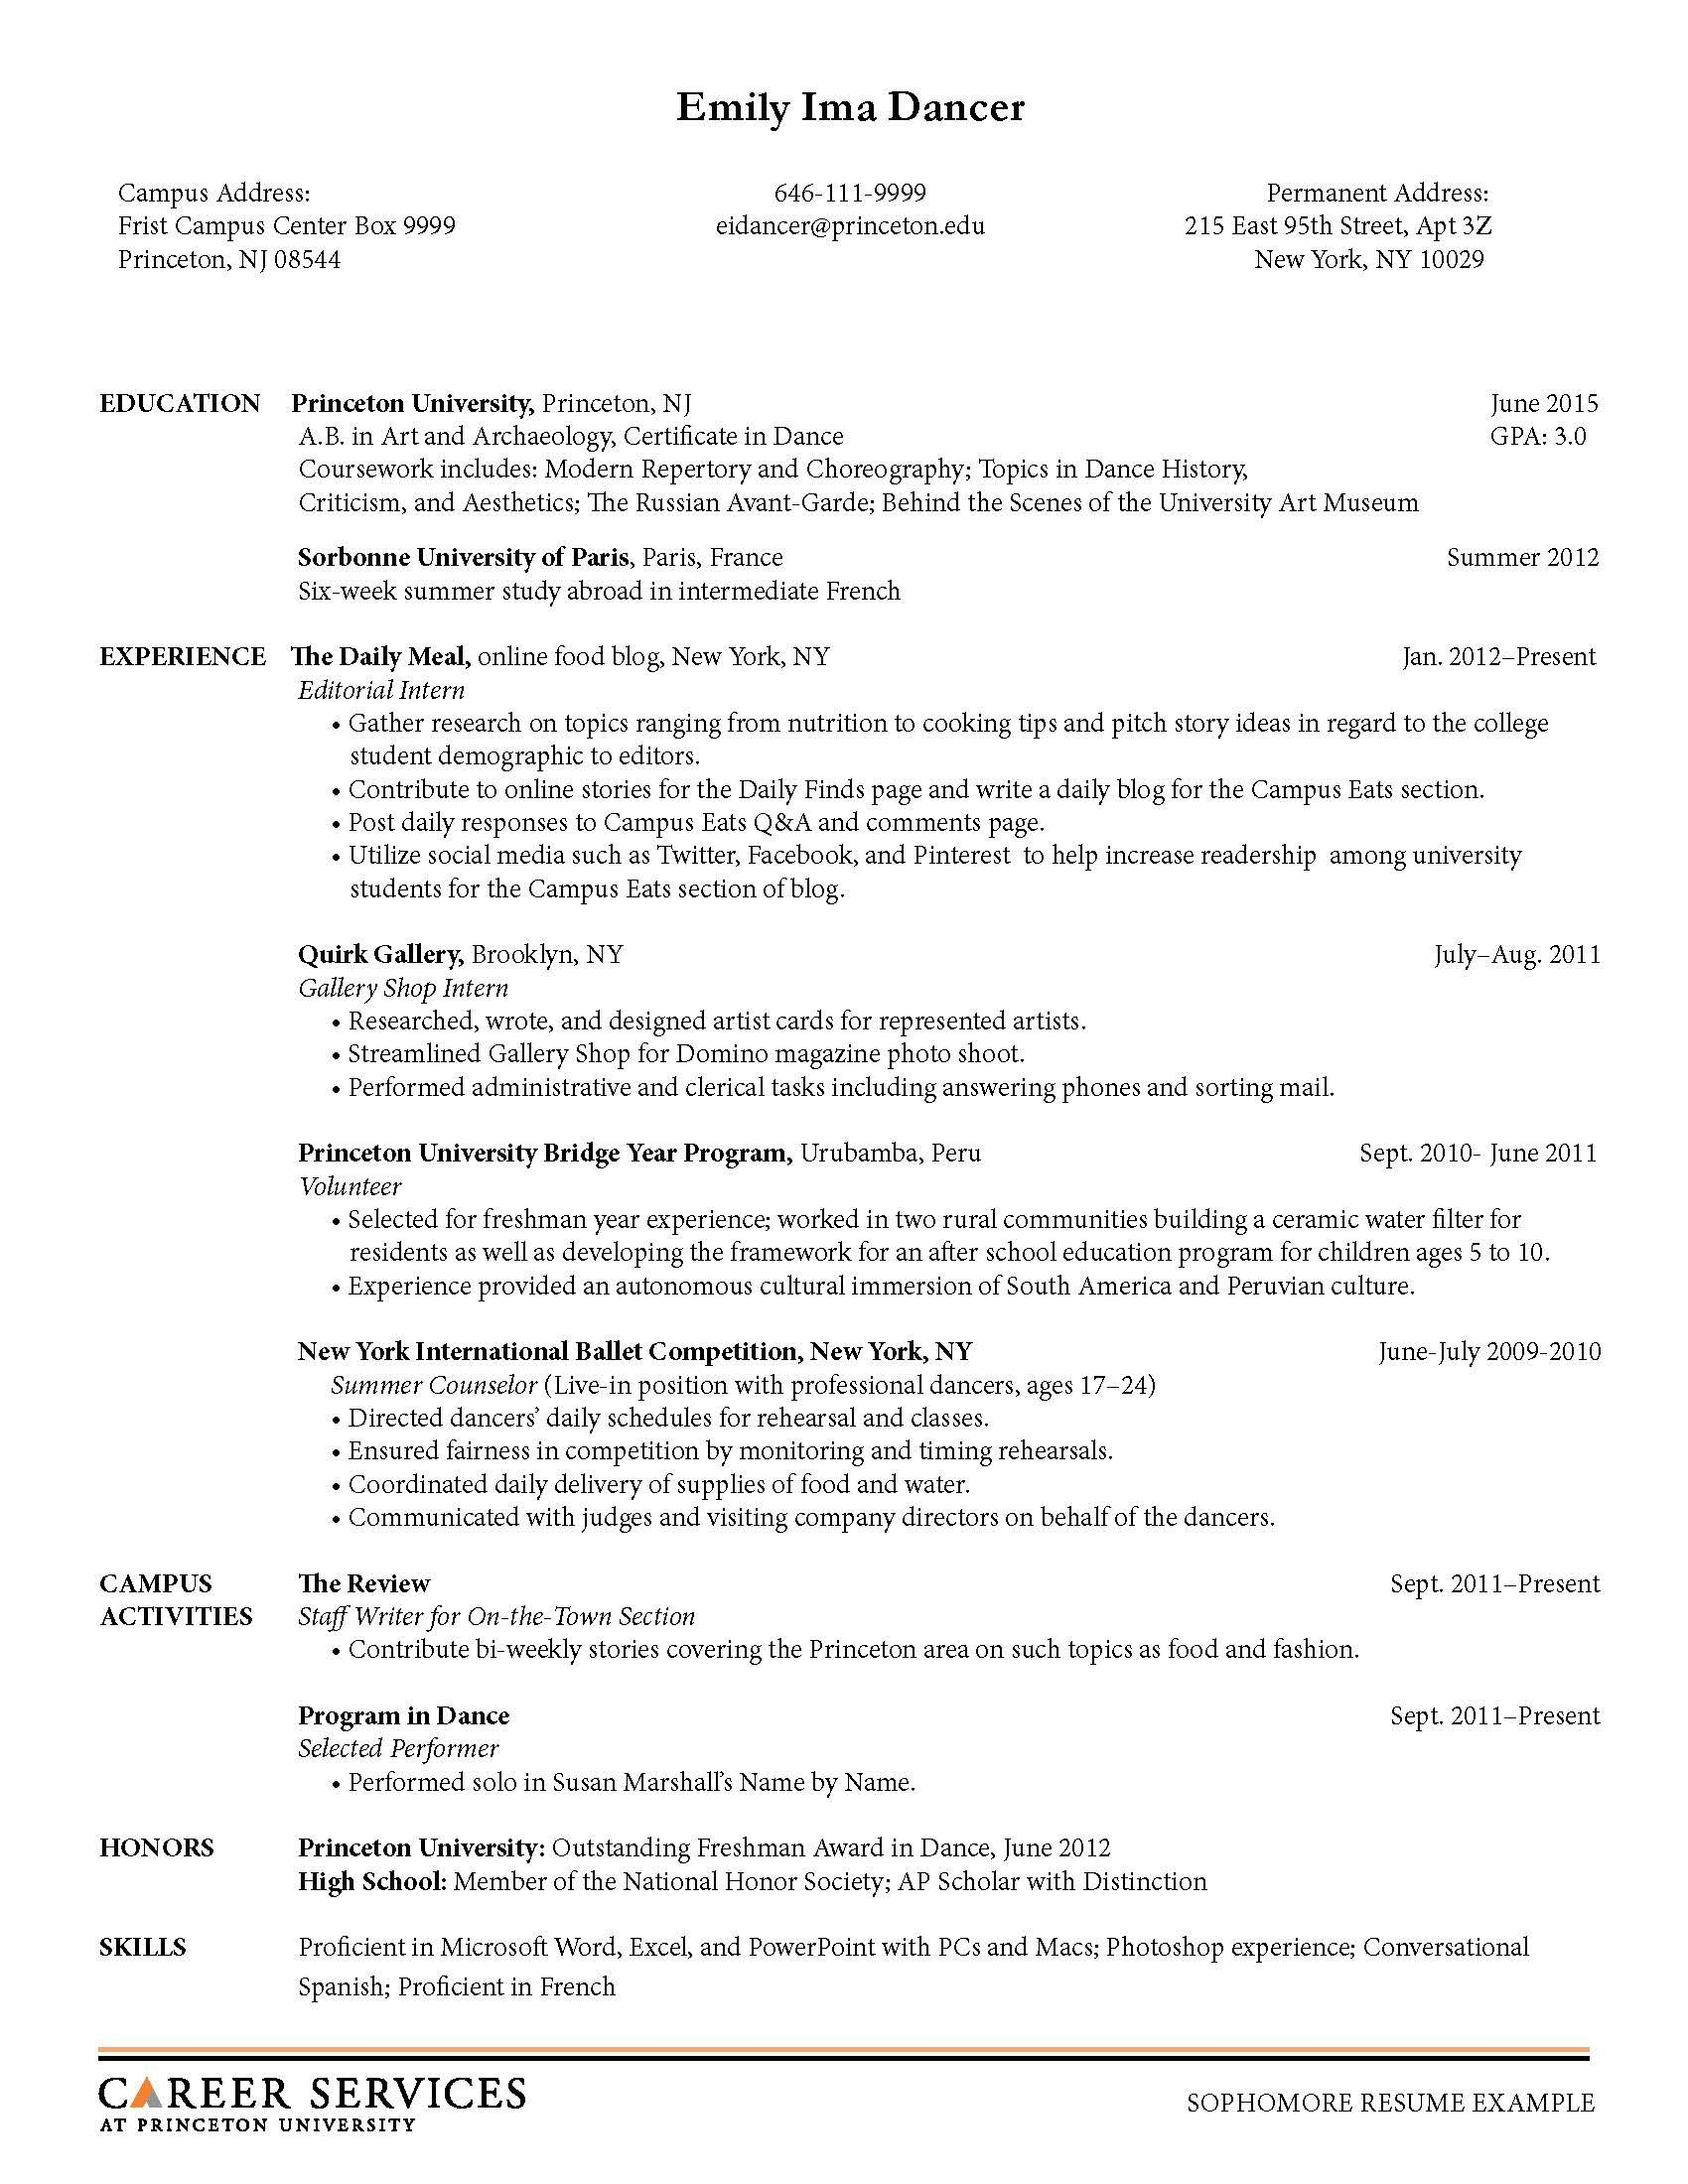 Opposenewapstandardsus  Seductive Sample Resume Resume And Career On Pinterest With Foxy Resume Order Of Jobs Besides Helicopter Pilot Resume Furthermore Head Cashier Resume With Beauteous Resume Phrases To Use Also Cook Resume Examples In Addition What Should My Resume Include And Legal Assistant Resume Examples As Well As Objective For A General Resume Additionally Make A Resume Online Free Download From Pinterestcom With Opposenewapstandardsus  Foxy Sample Resume Resume And Career On Pinterest With Beauteous Resume Order Of Jobs Besides Helicopter Pilot Resume Furthermore Head Cashier Resume And Seductive Resume Phrases To Use Also Cook Resume Examples In Addition What Should My Resume Include From Pinterestcom